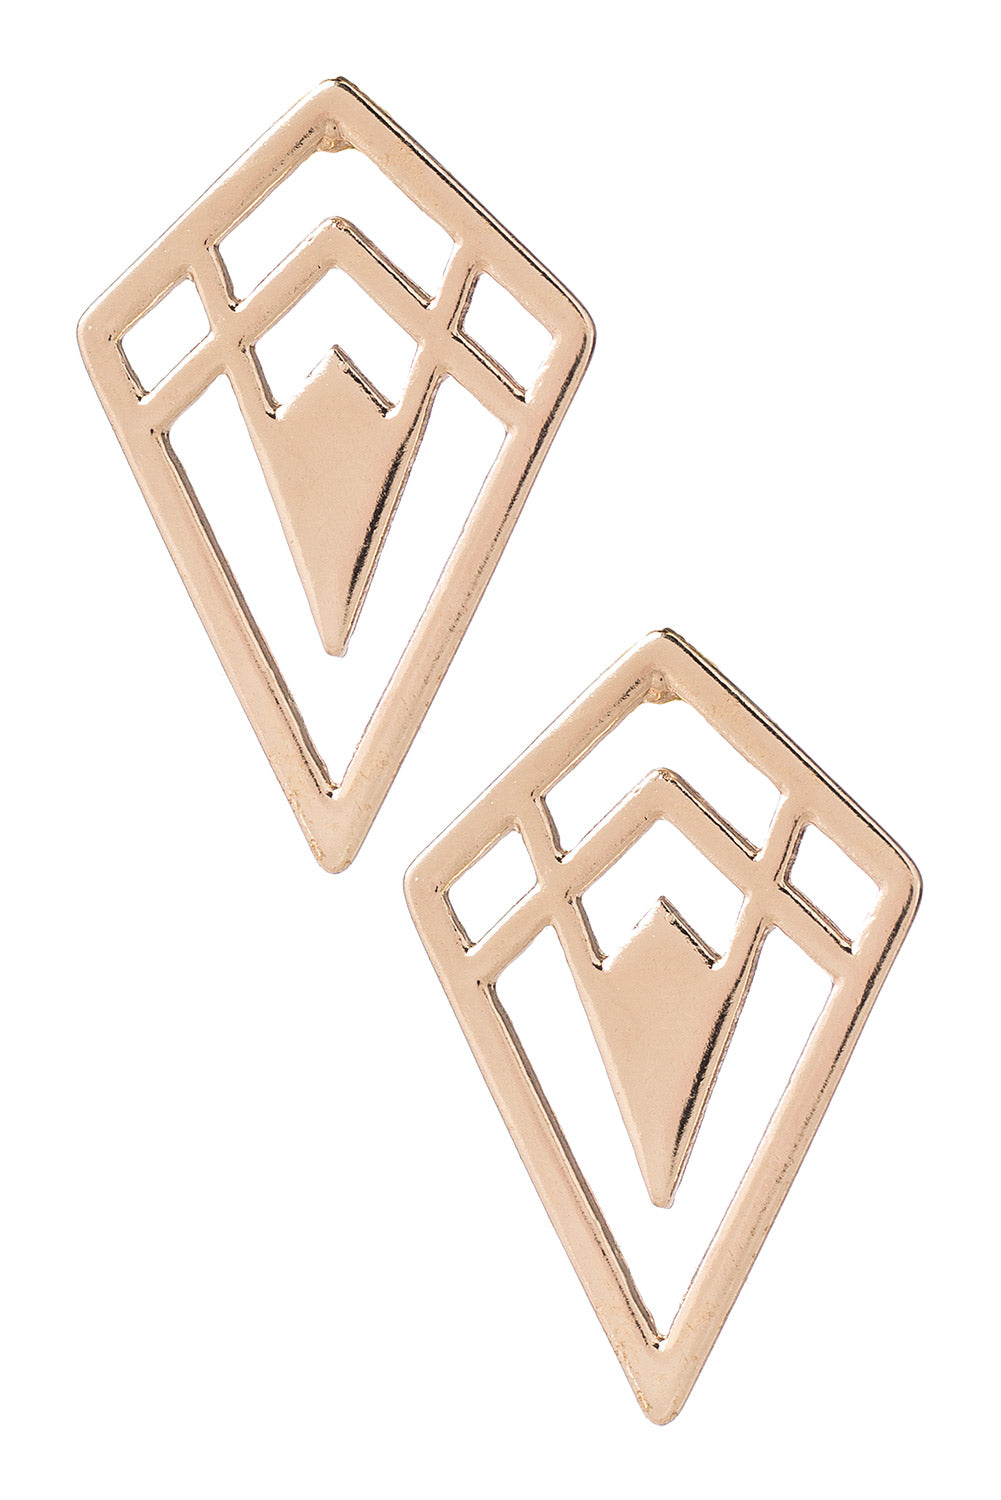 Type 3 Golden Spike Earrings